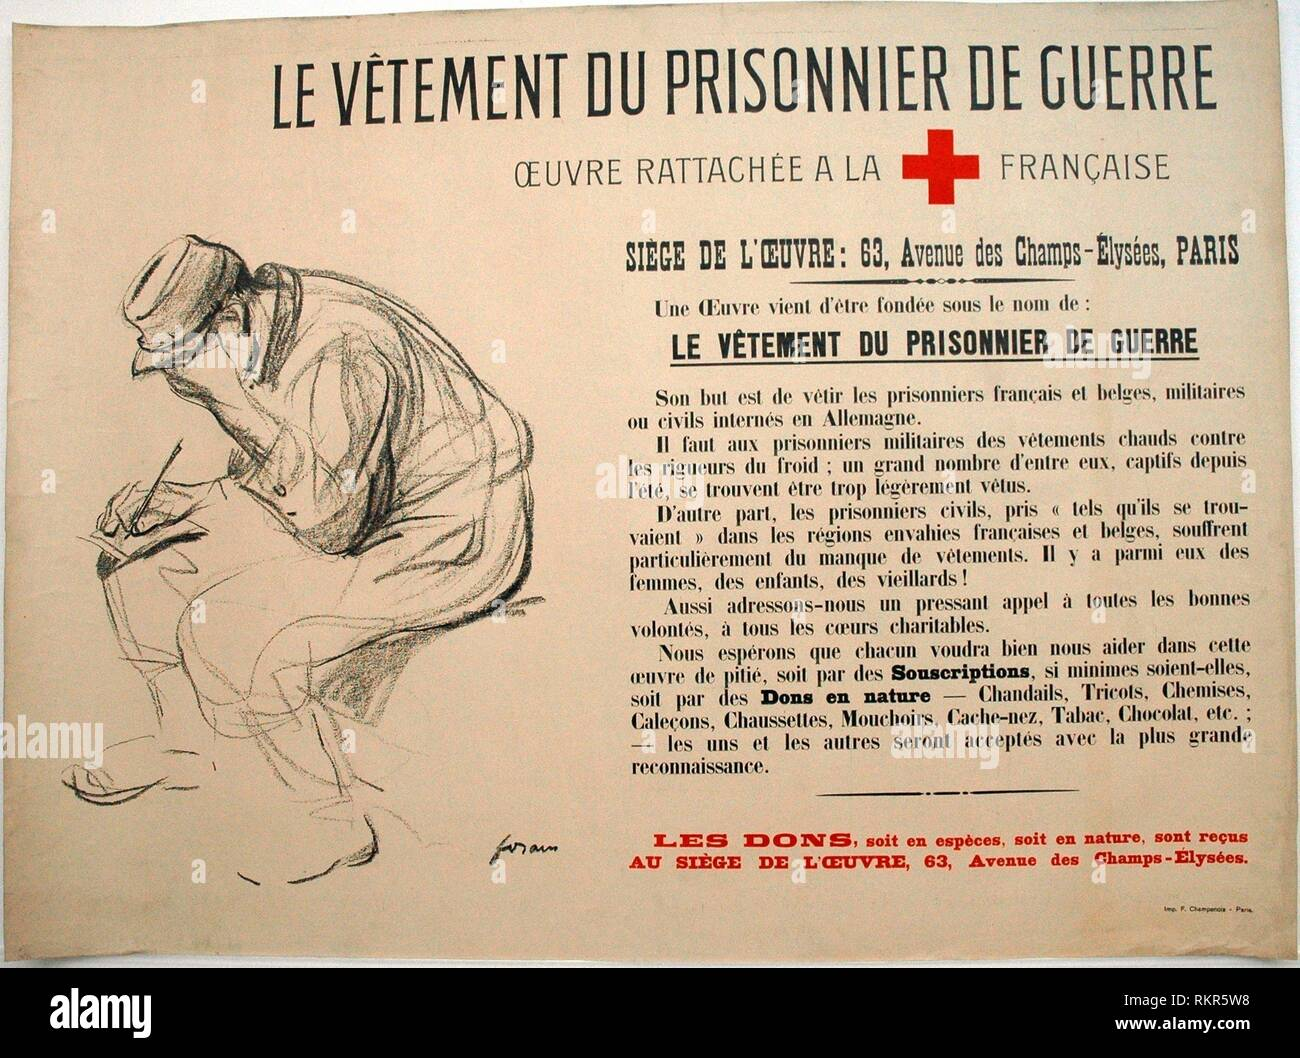 The Clothing of the Prisoner of War - c. 1915 - Jean Louis Forain (French, 1852-1931) Printed by F. Champenois - Artist: Jean Louis Forain, Origin: - Stock Image